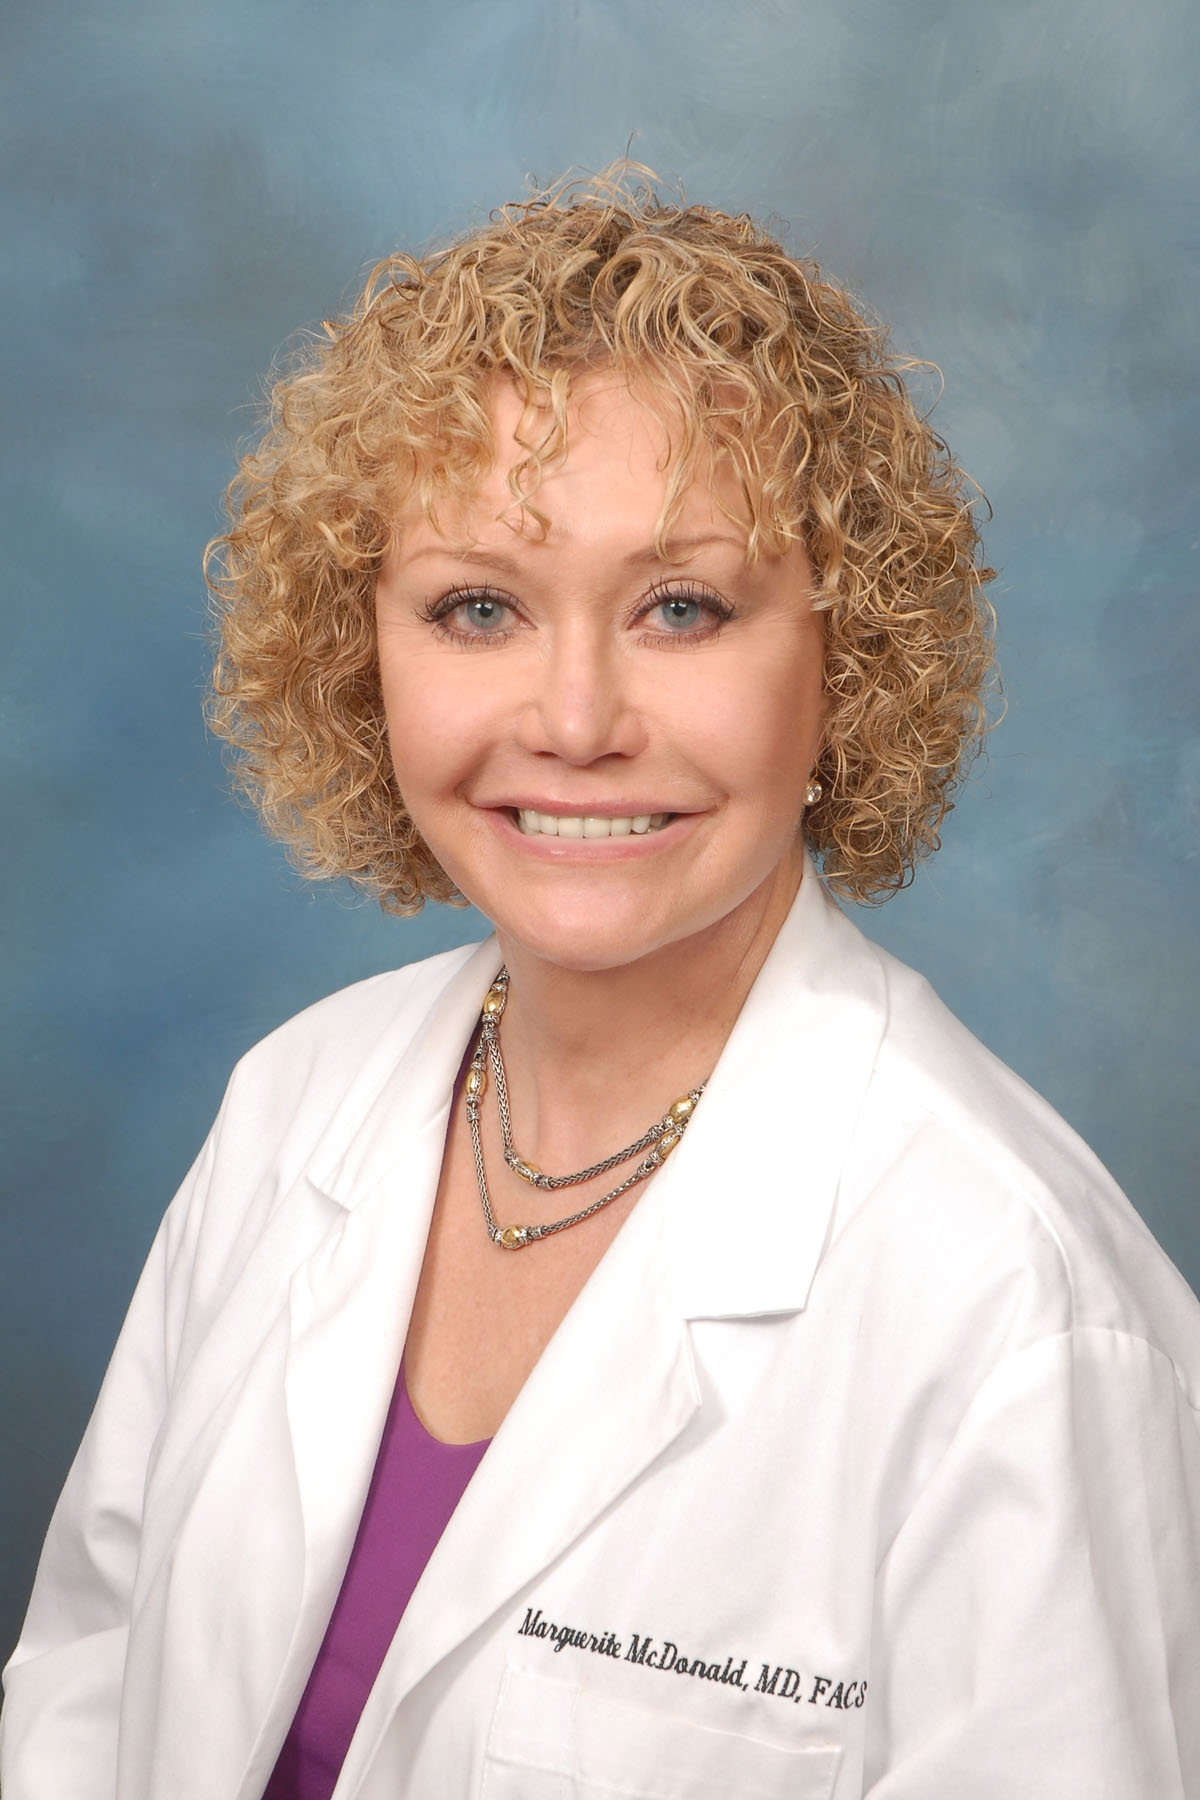 Marguerite McDonald, MD, FACS, board-certified ophthalmologist, Ophthalmic Consultants of Long Island